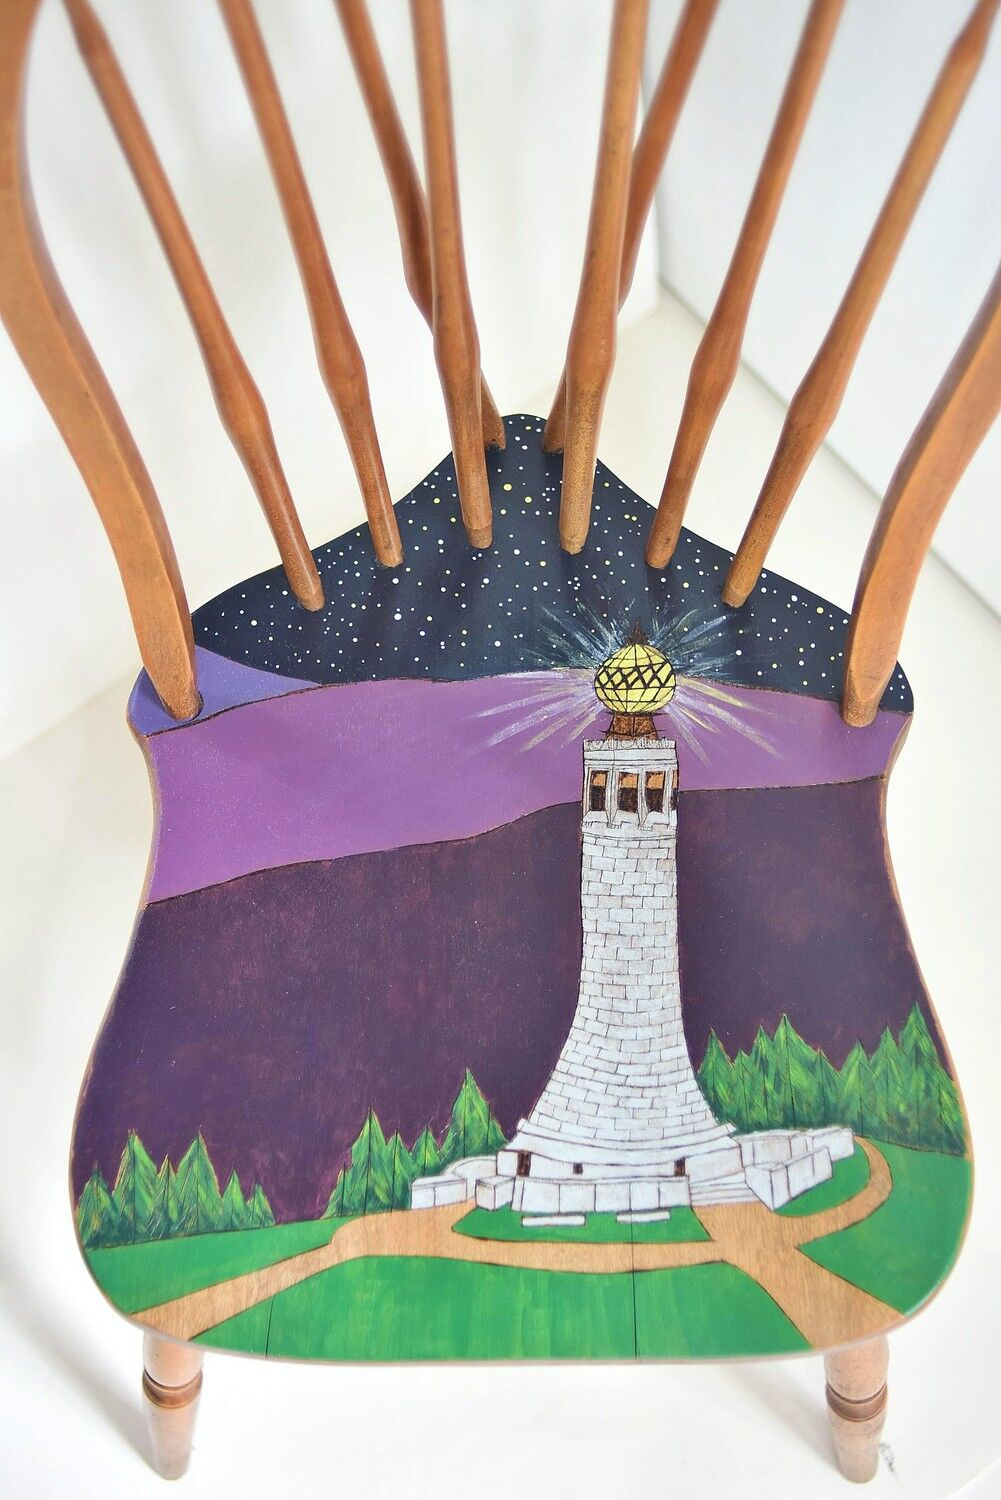 Youth Center Inc.'s Great Chair Auction makes you think before sitting down